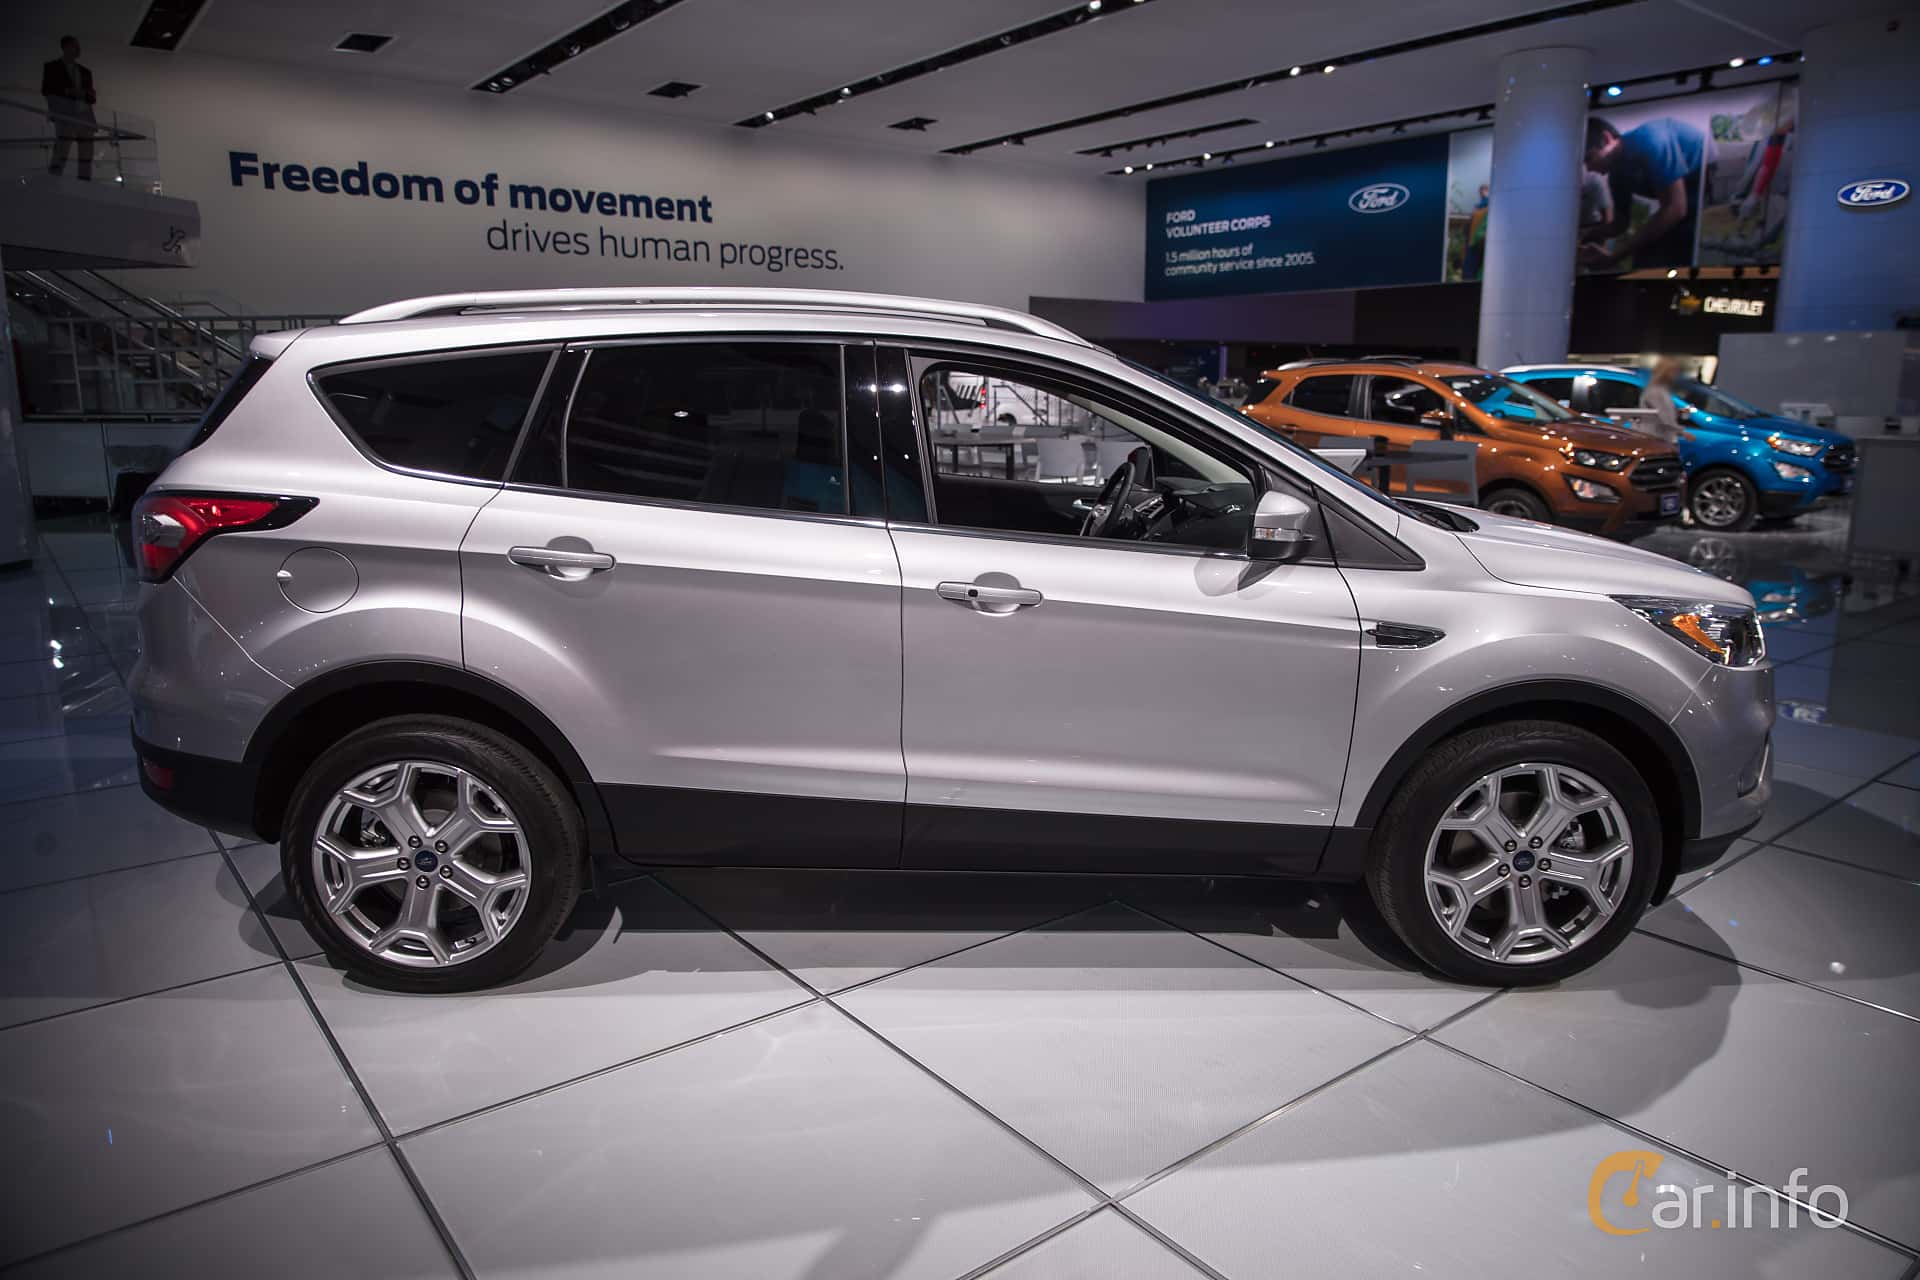 Ford Escape Dimensions >> Ford Escape 3rd Generation Facelift 2.0 EcoBoost 4WD ...